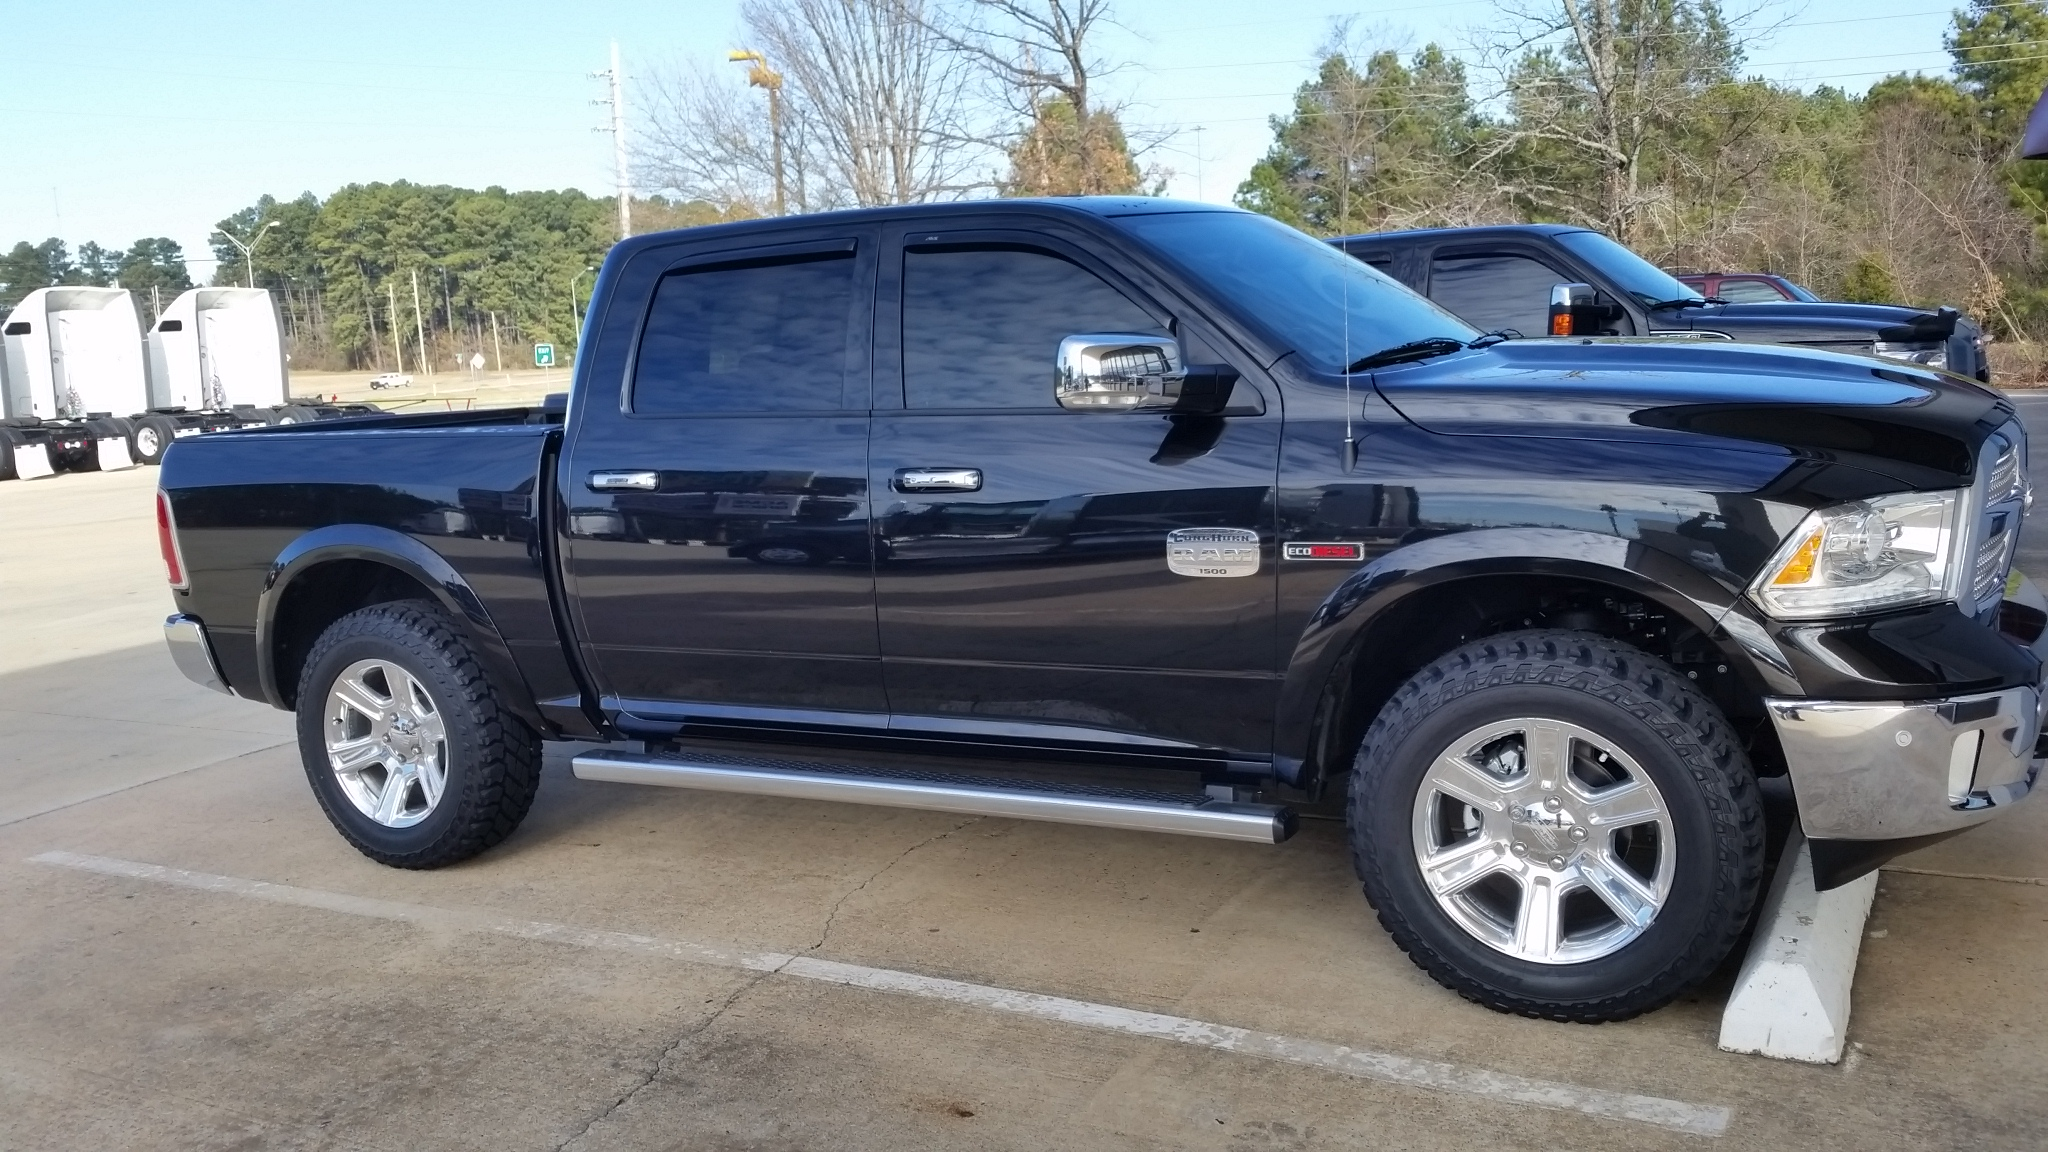 March 2016 ram 1500 diesel truck of the month contest 20160128_094253 jpg